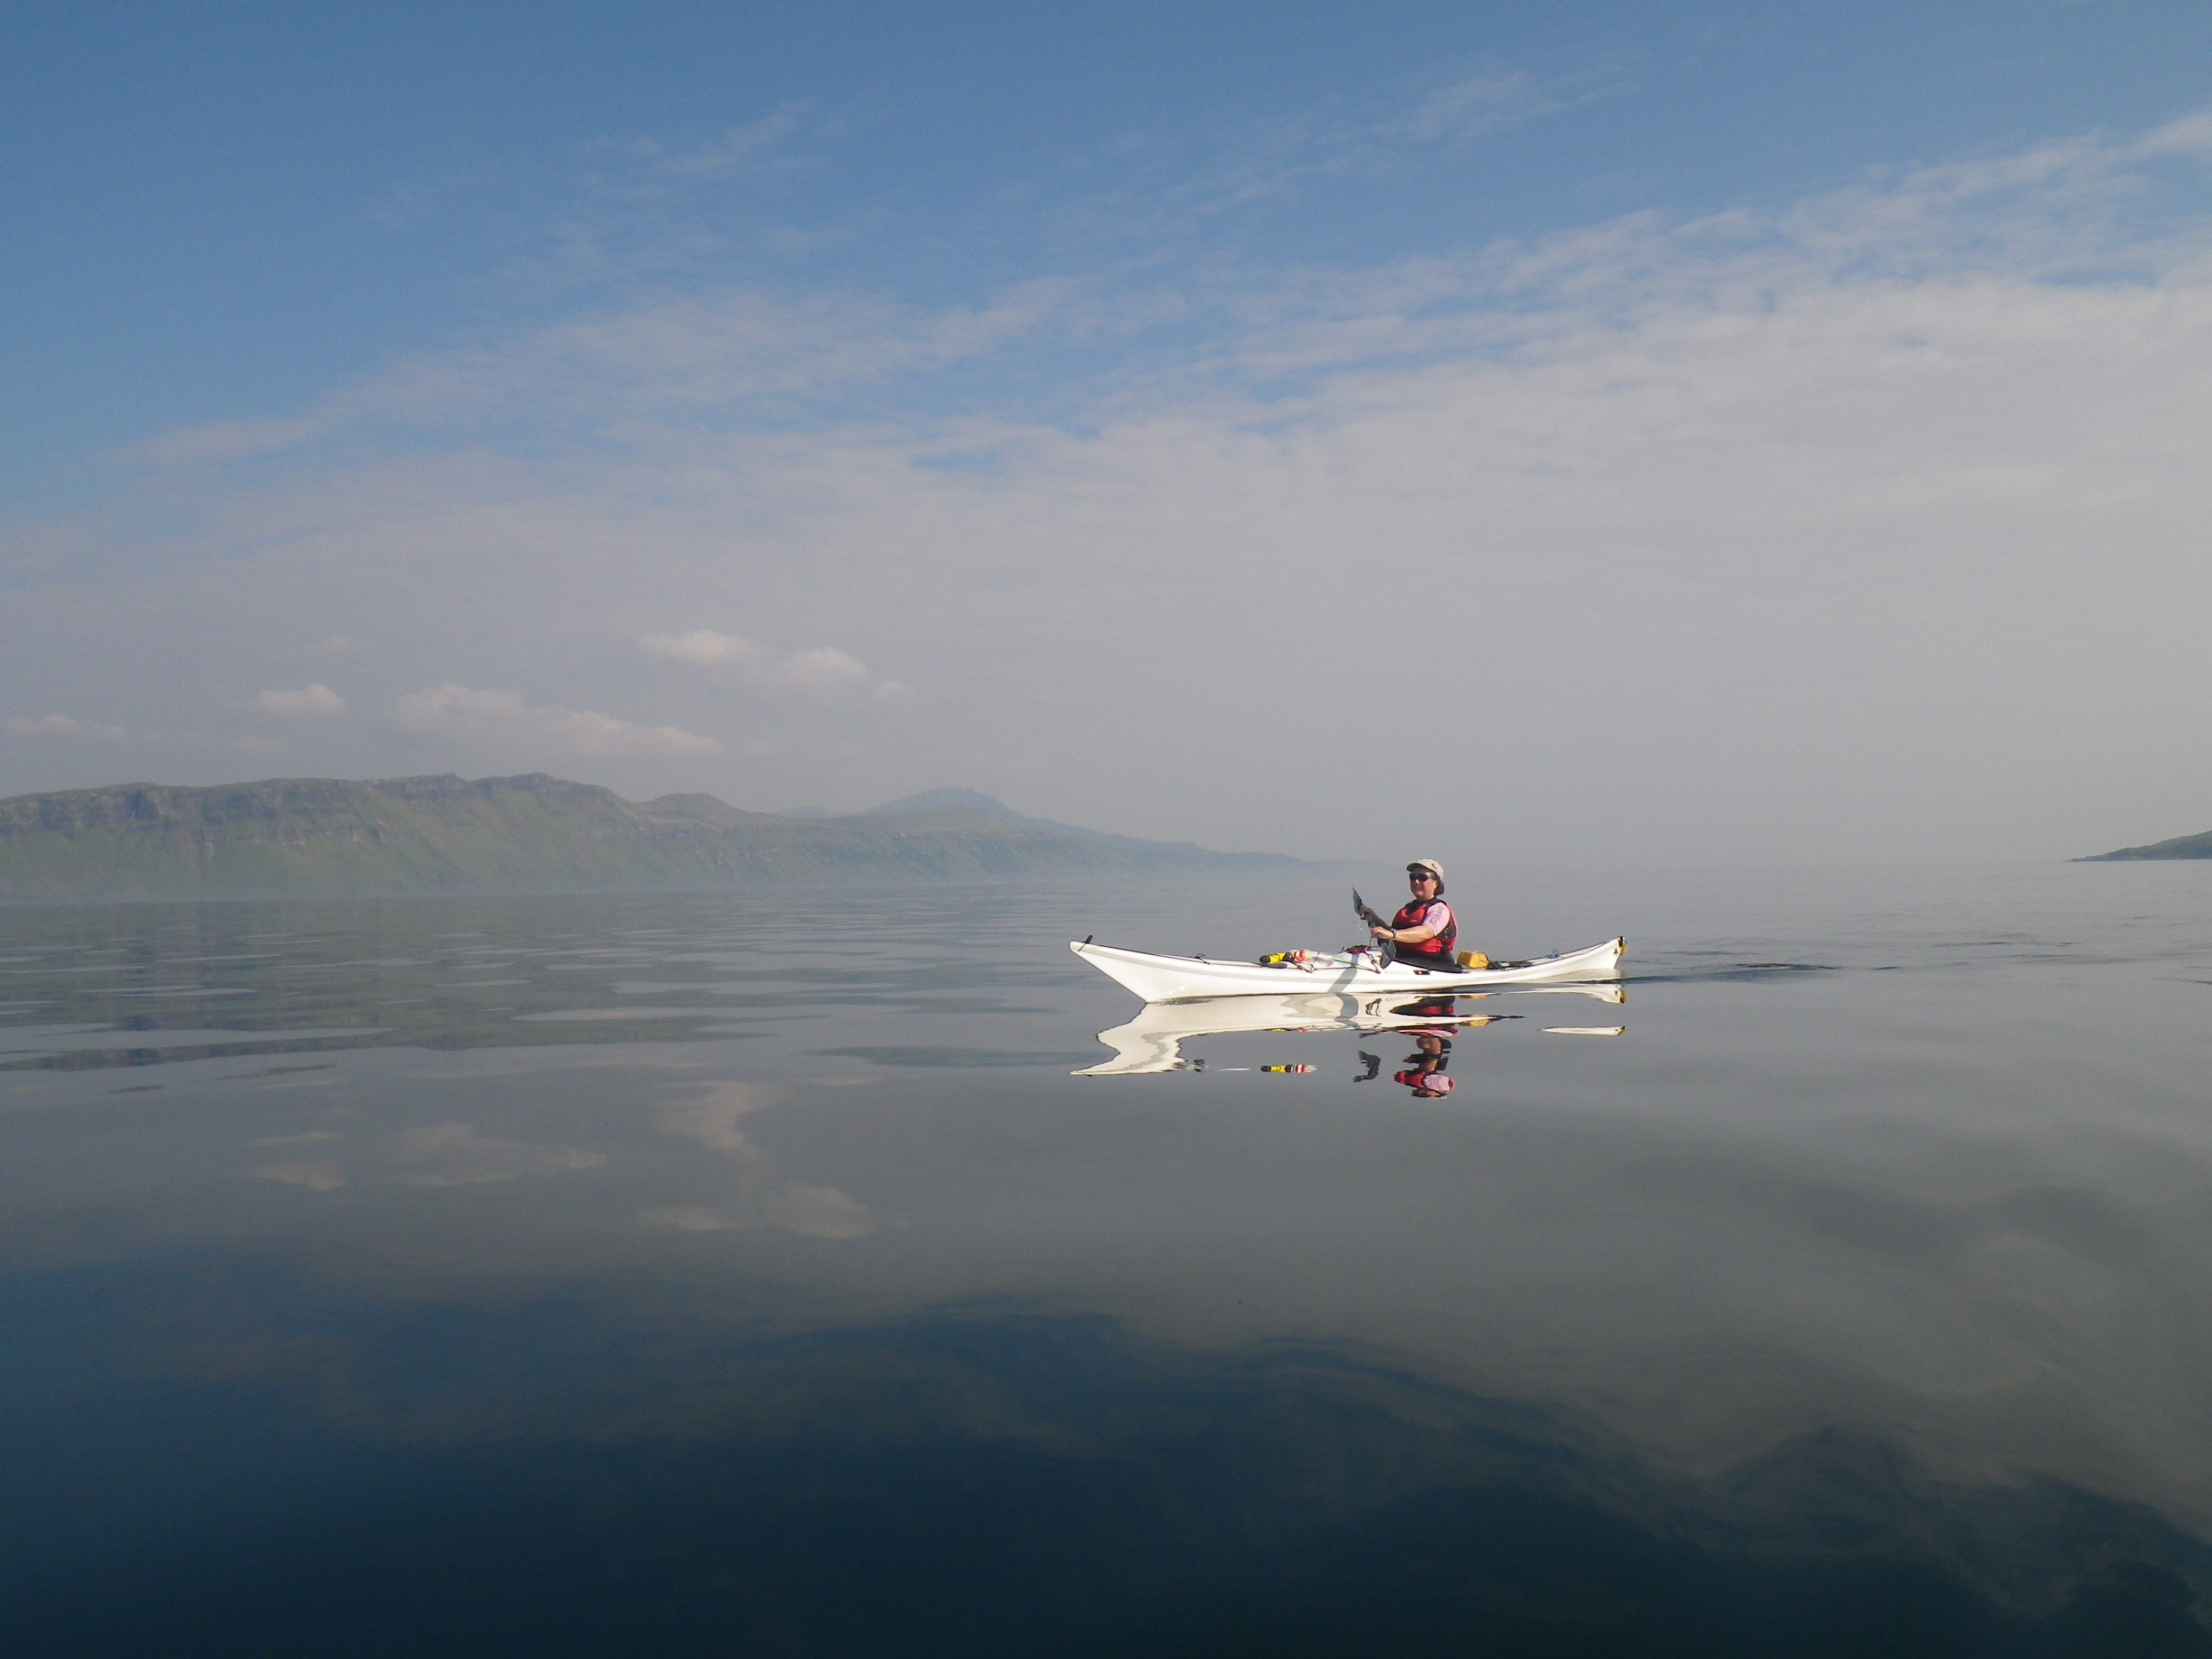 Raasay & Rona Expedition: Go Canoeing Week Photo Competition Winners